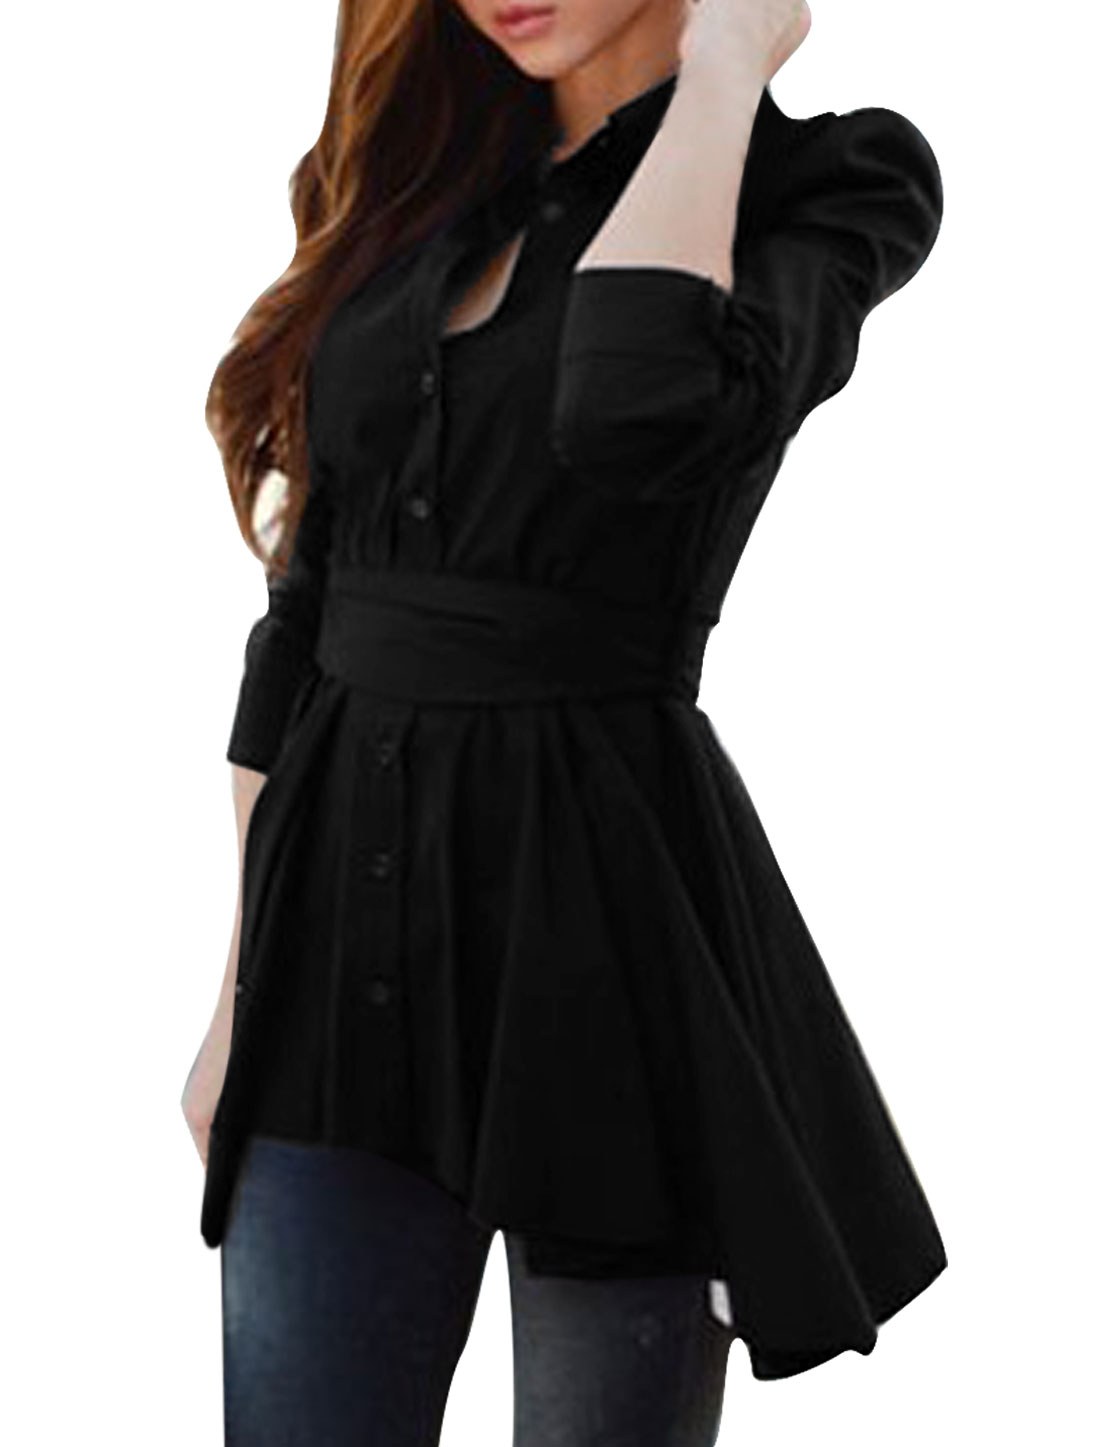 Women's Single Breasted Puff Sleeve Point Collar Long Shirt Black XS